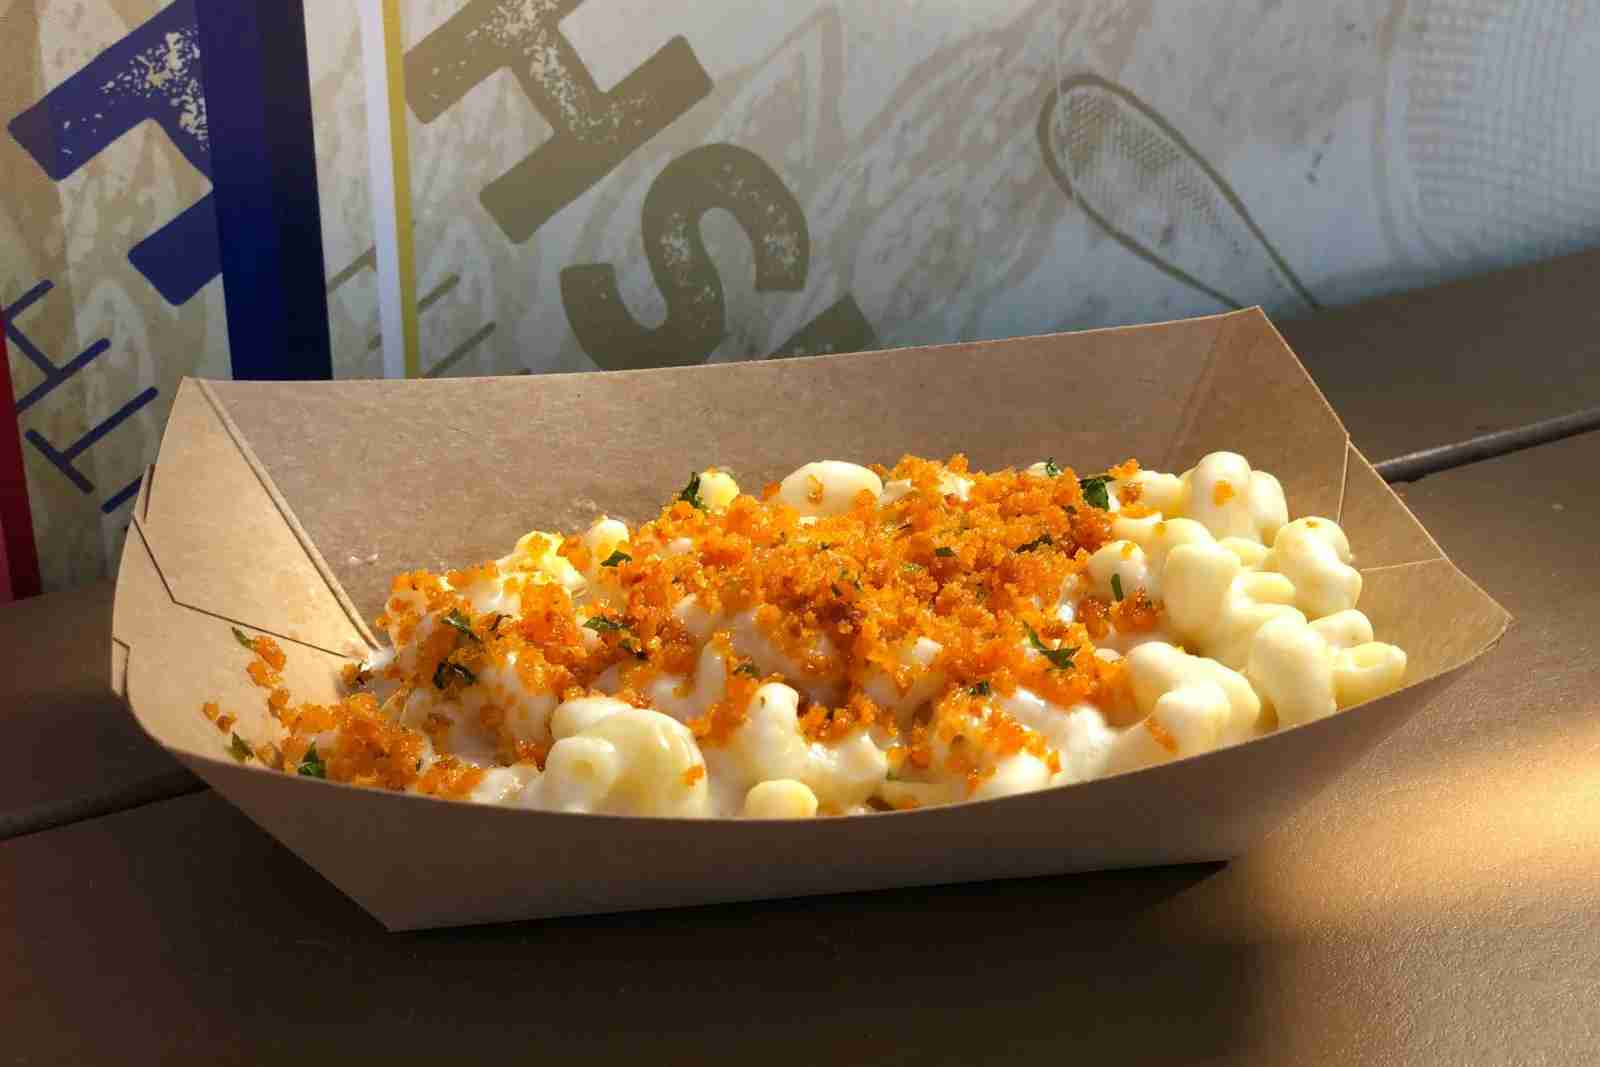 Disneyland Food Wine - Garlic Mac Cheese